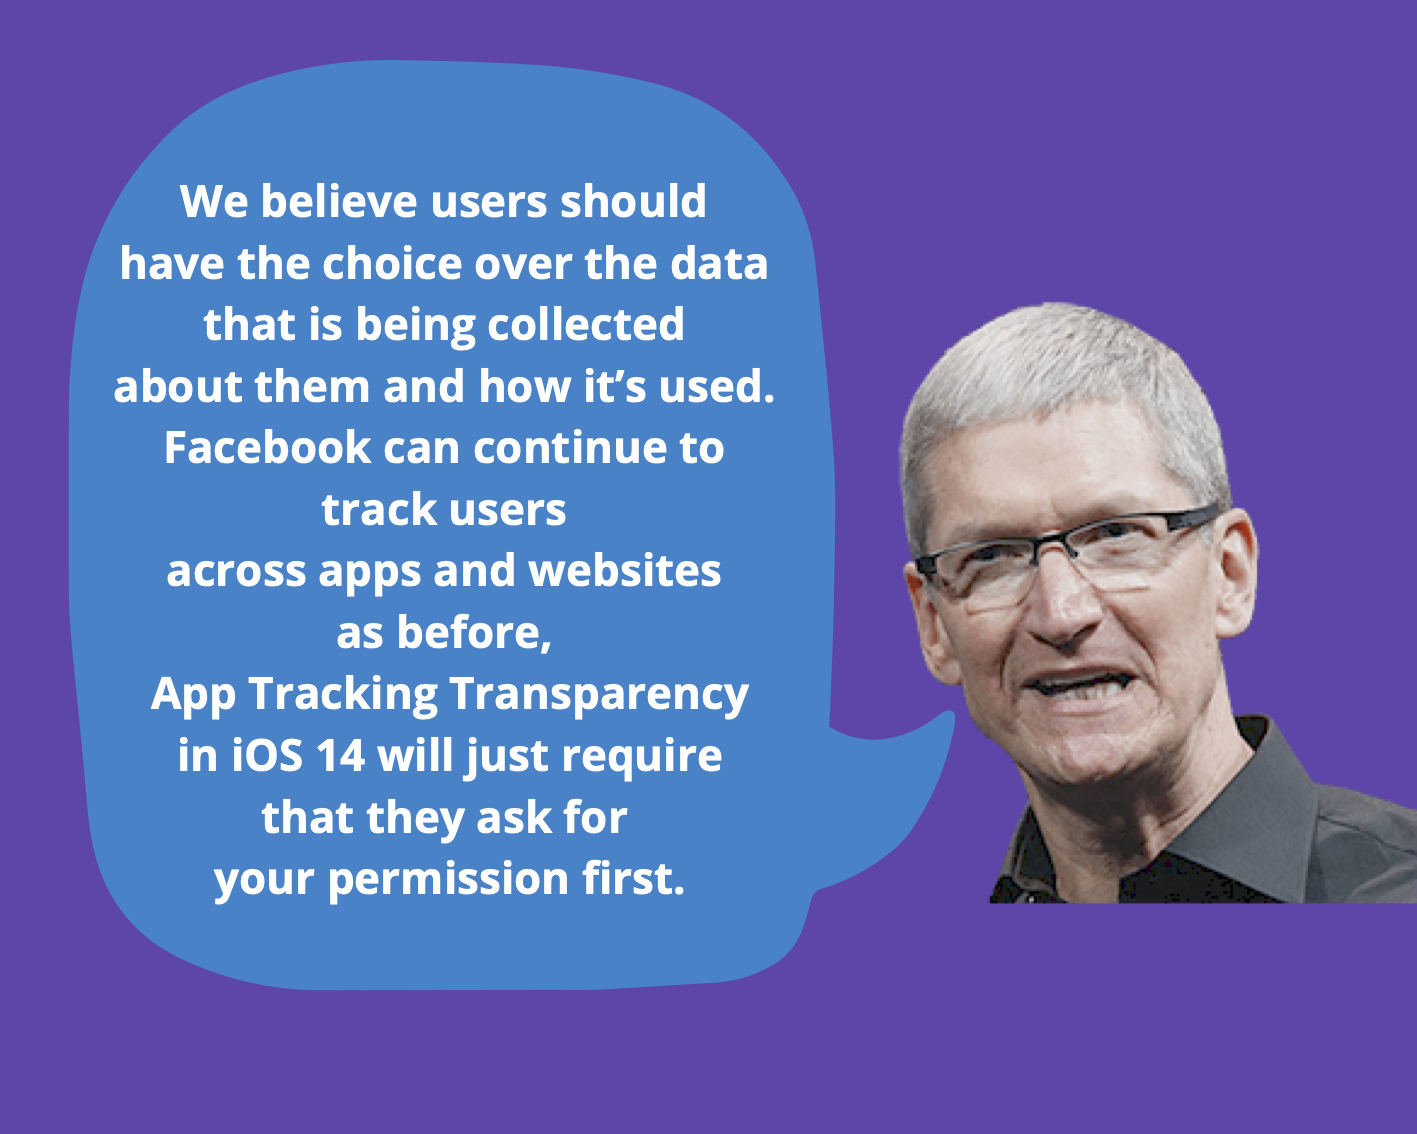 Tim Cook suggests Facebook should give user's a choice in a tweet.